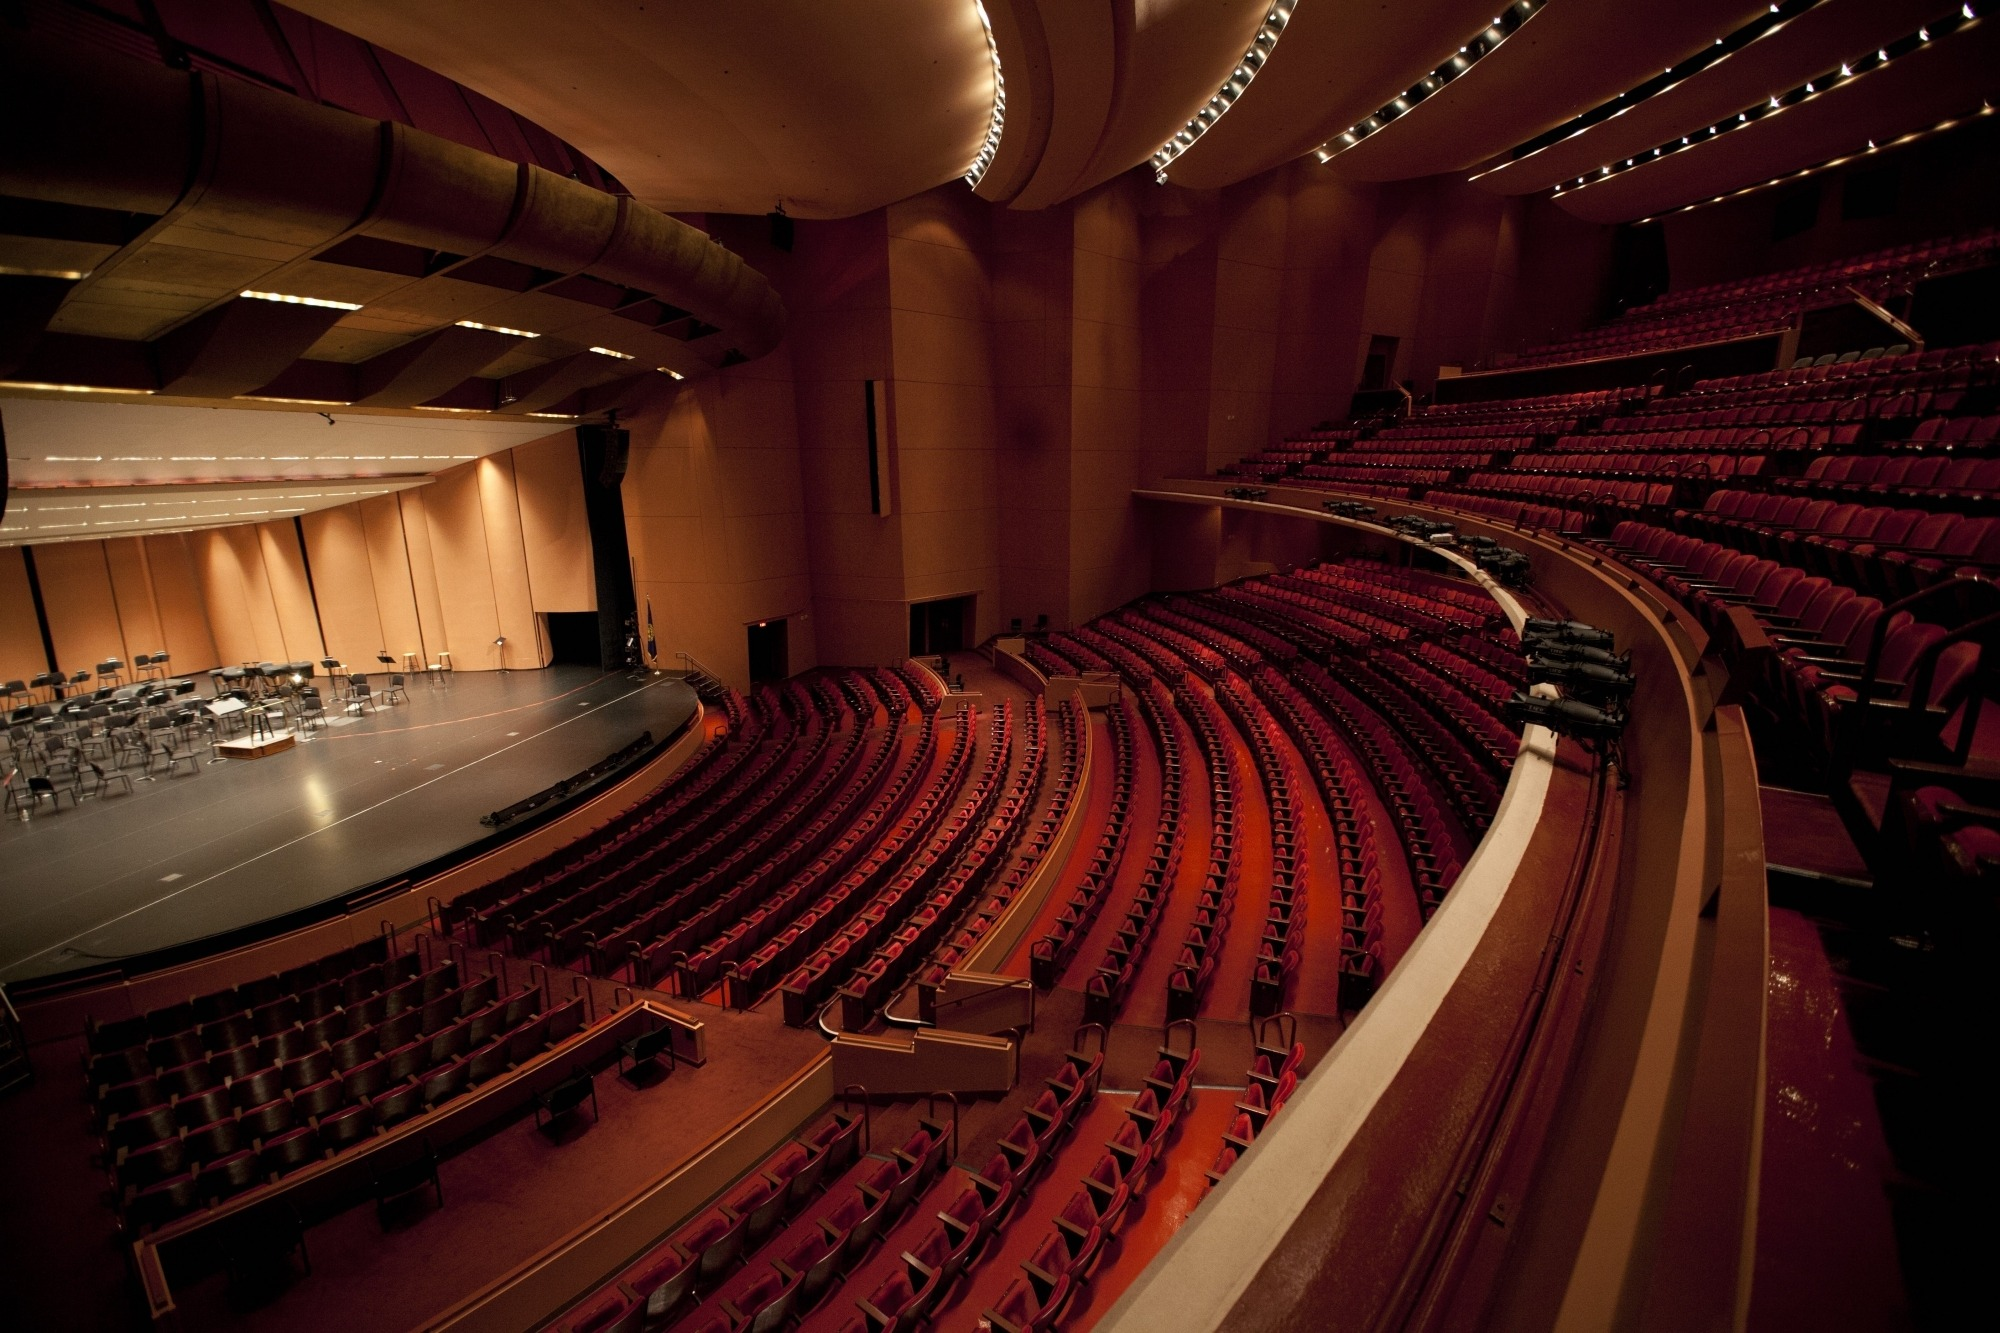 Image of the empty Lied Center auditorium taken from the corner of the balcony showing the orchestra shell and music stands on stage